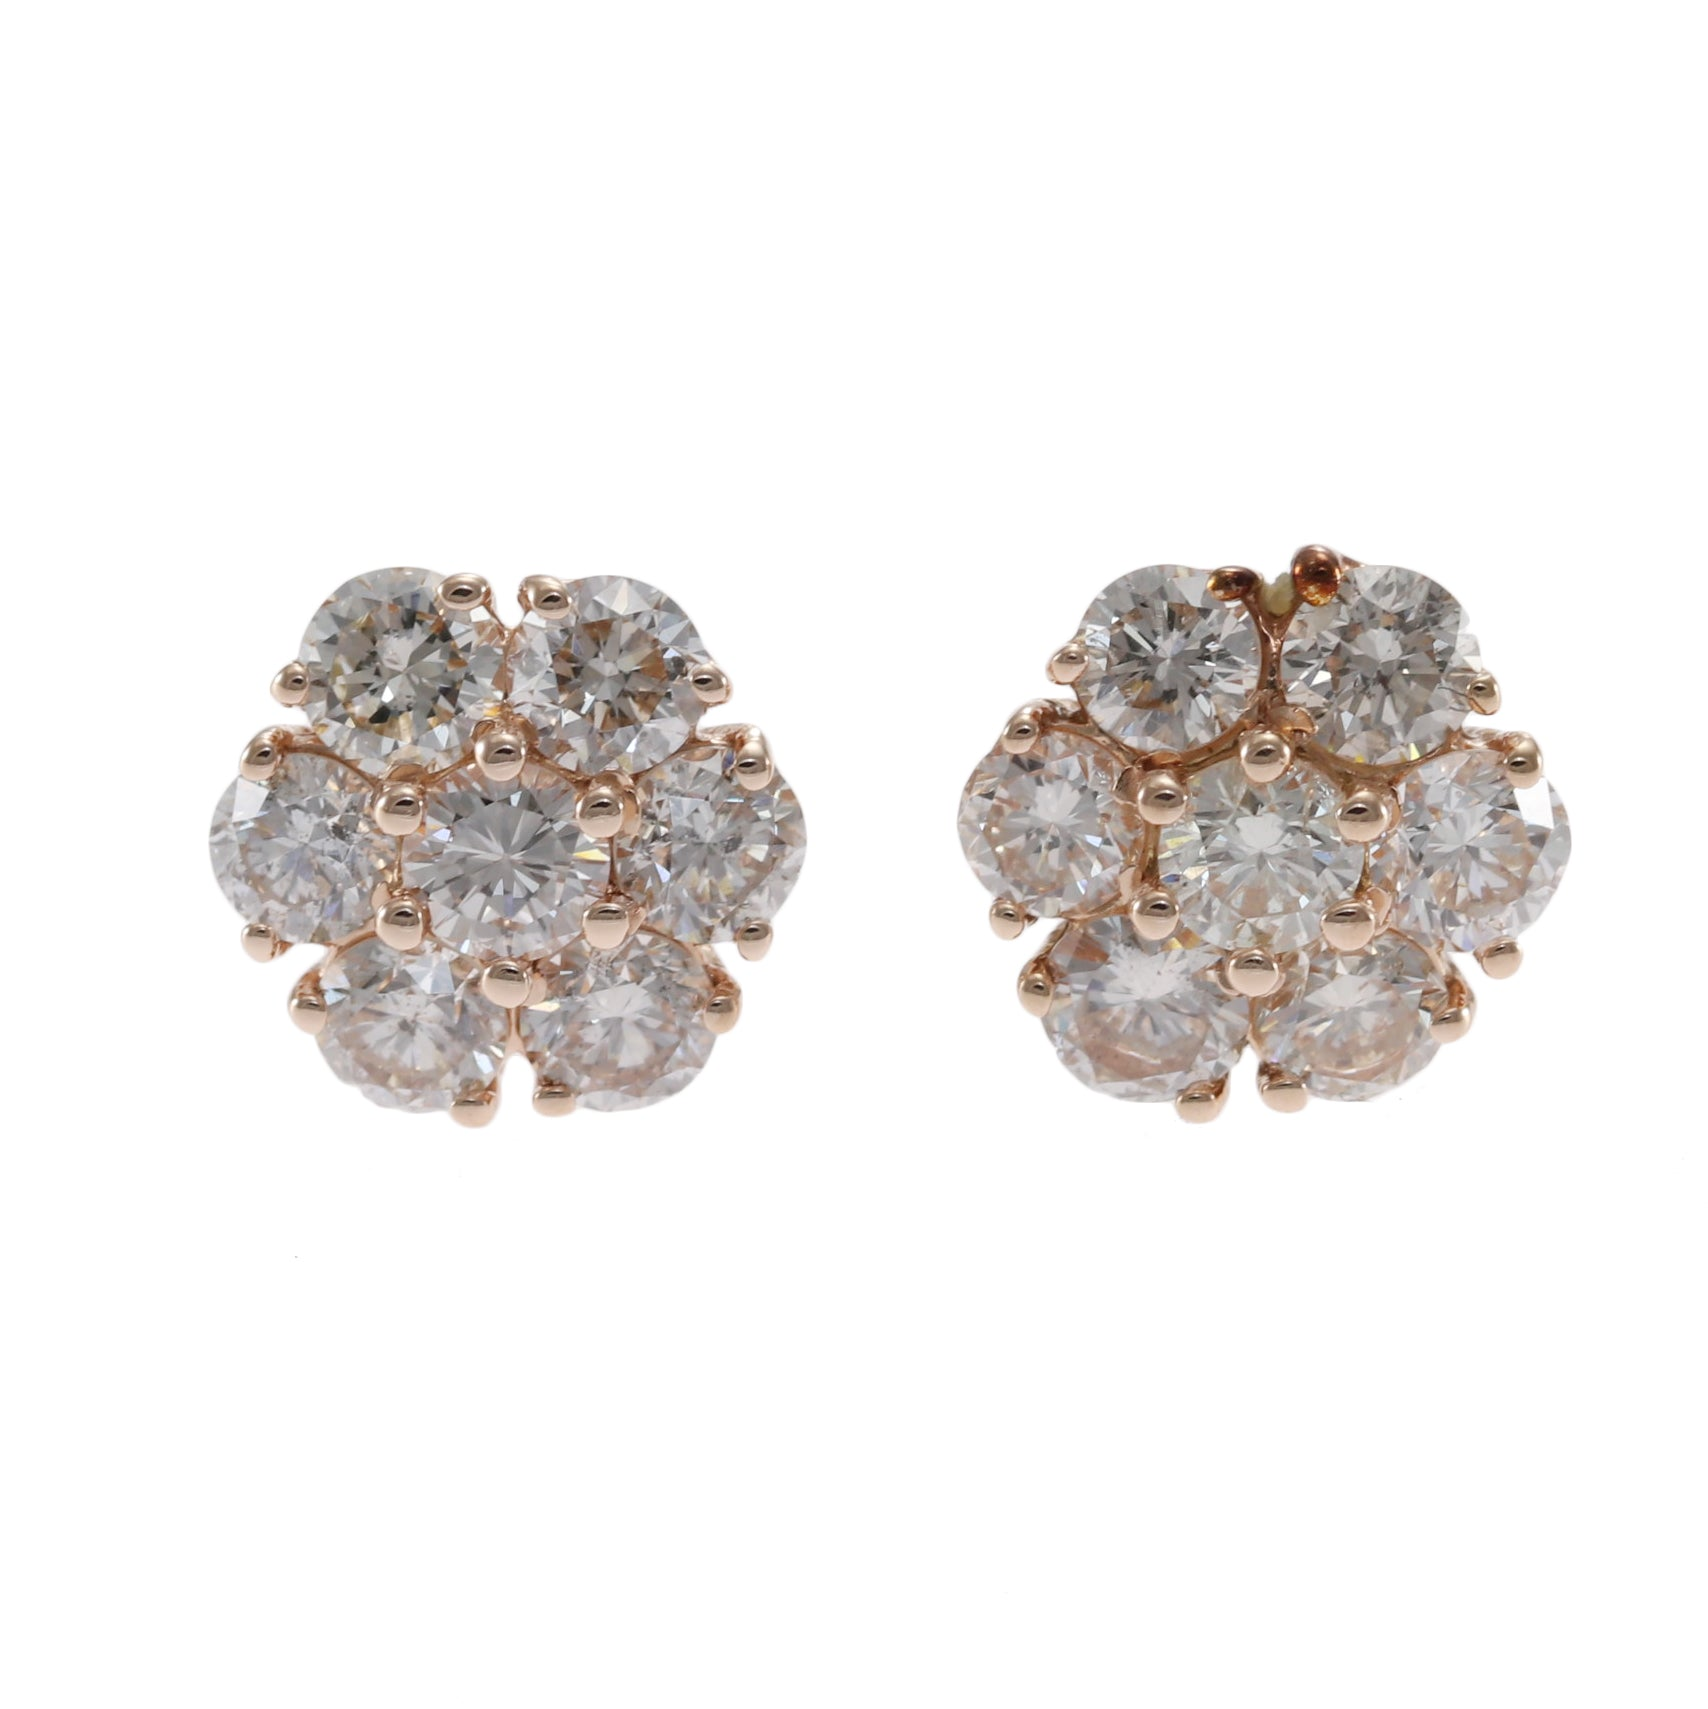 1 20ctw Round Diamond Flower Stud Cluster Earrings 14k Rose Gold Butte The Jewelry Gallery Of Oyster Bay